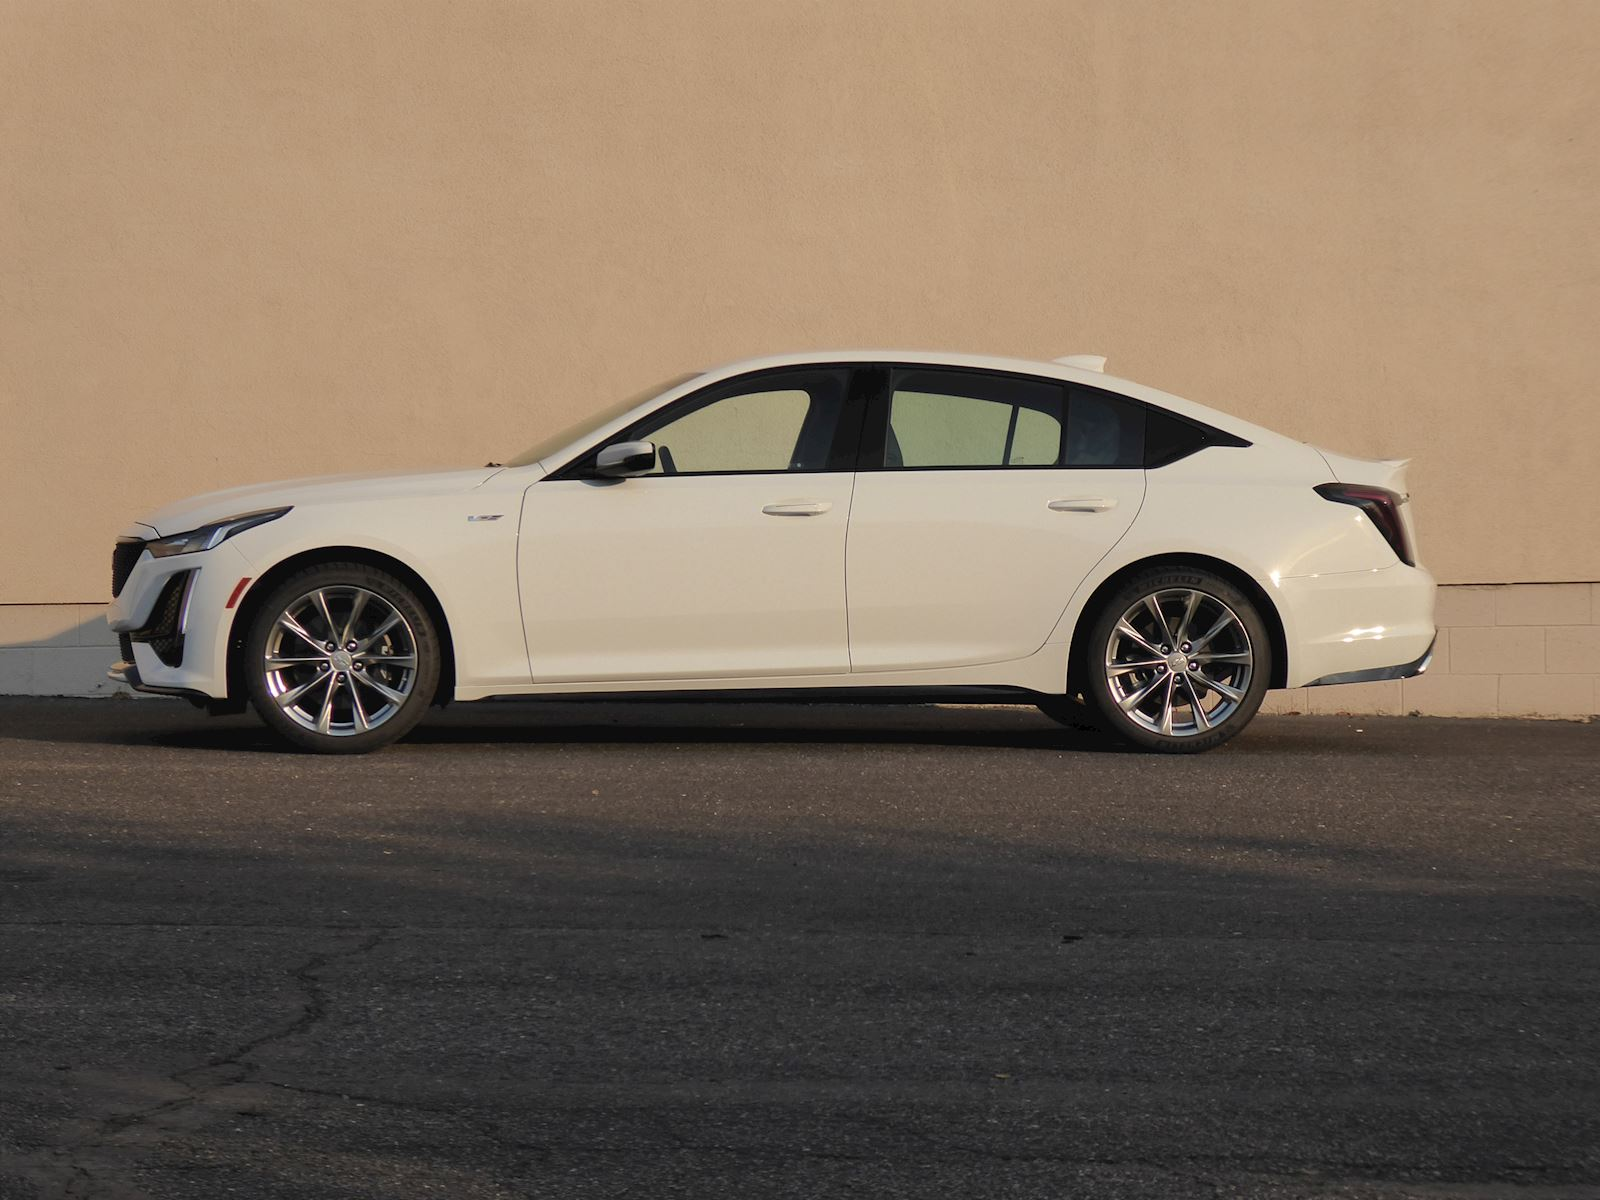 2020 Cadillac CT5 side view